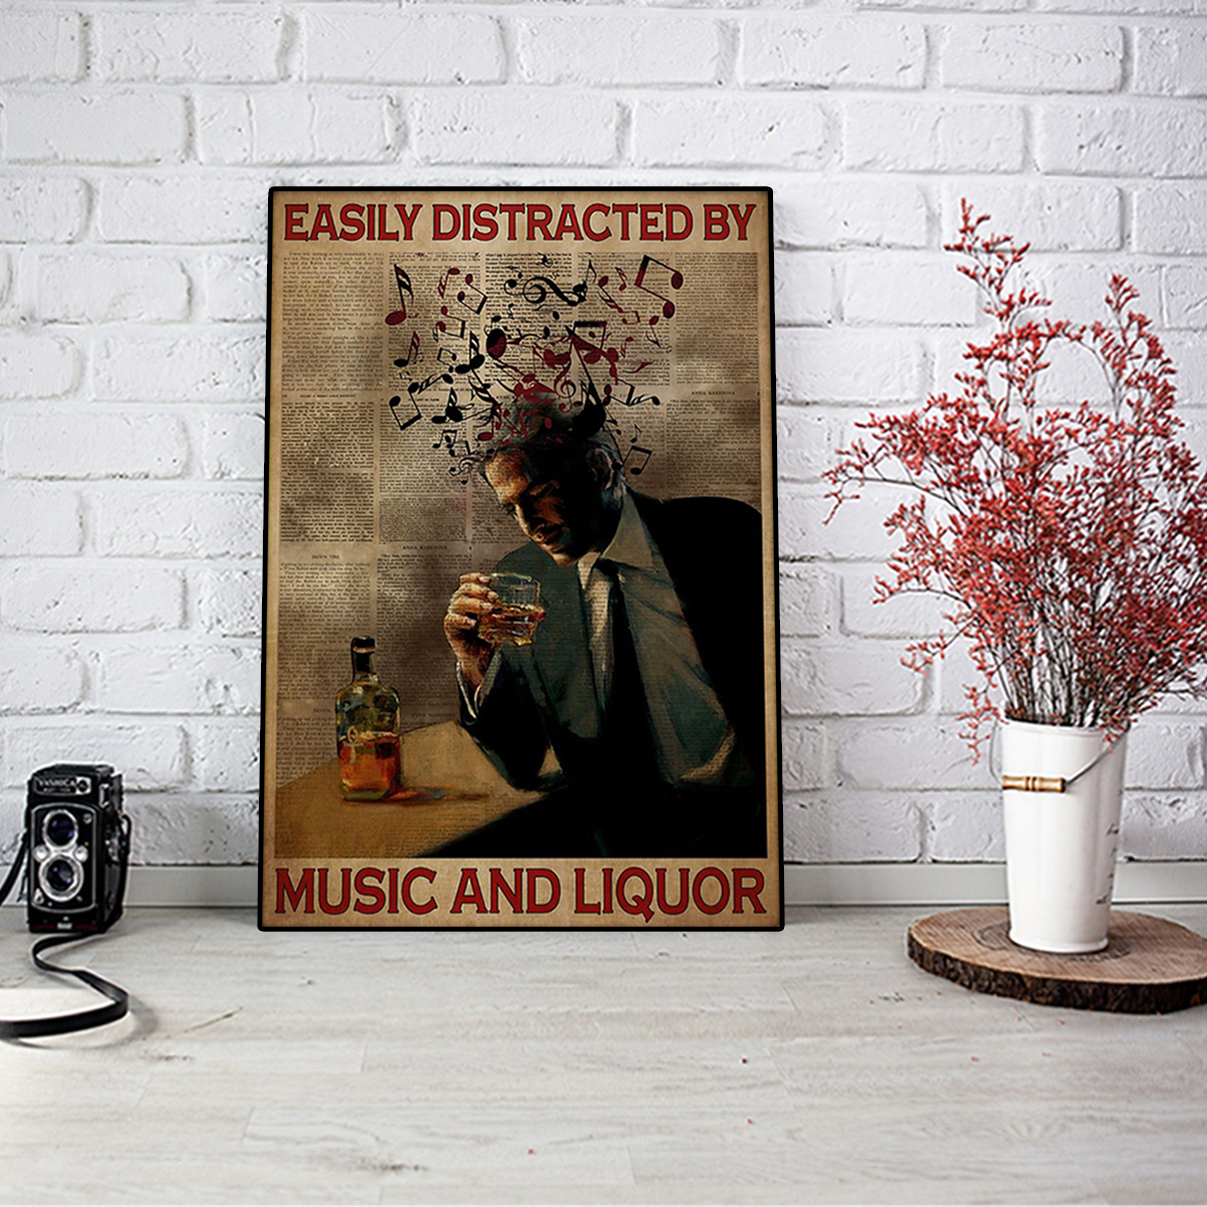 Man easily distracted by music and liquor poster A3